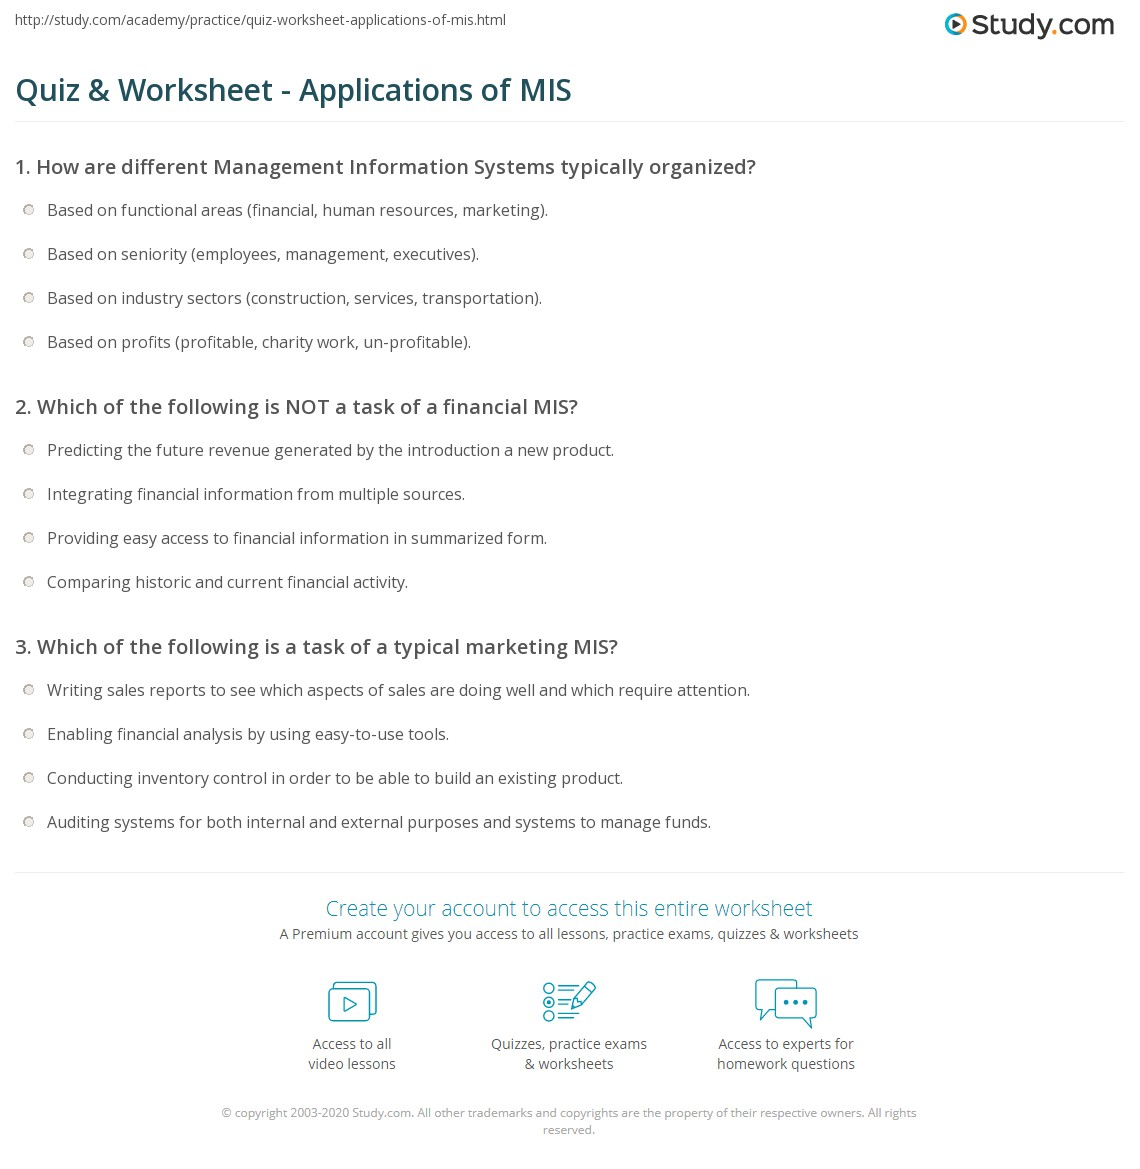 Quiz Worksheet Applications Of Mis Study